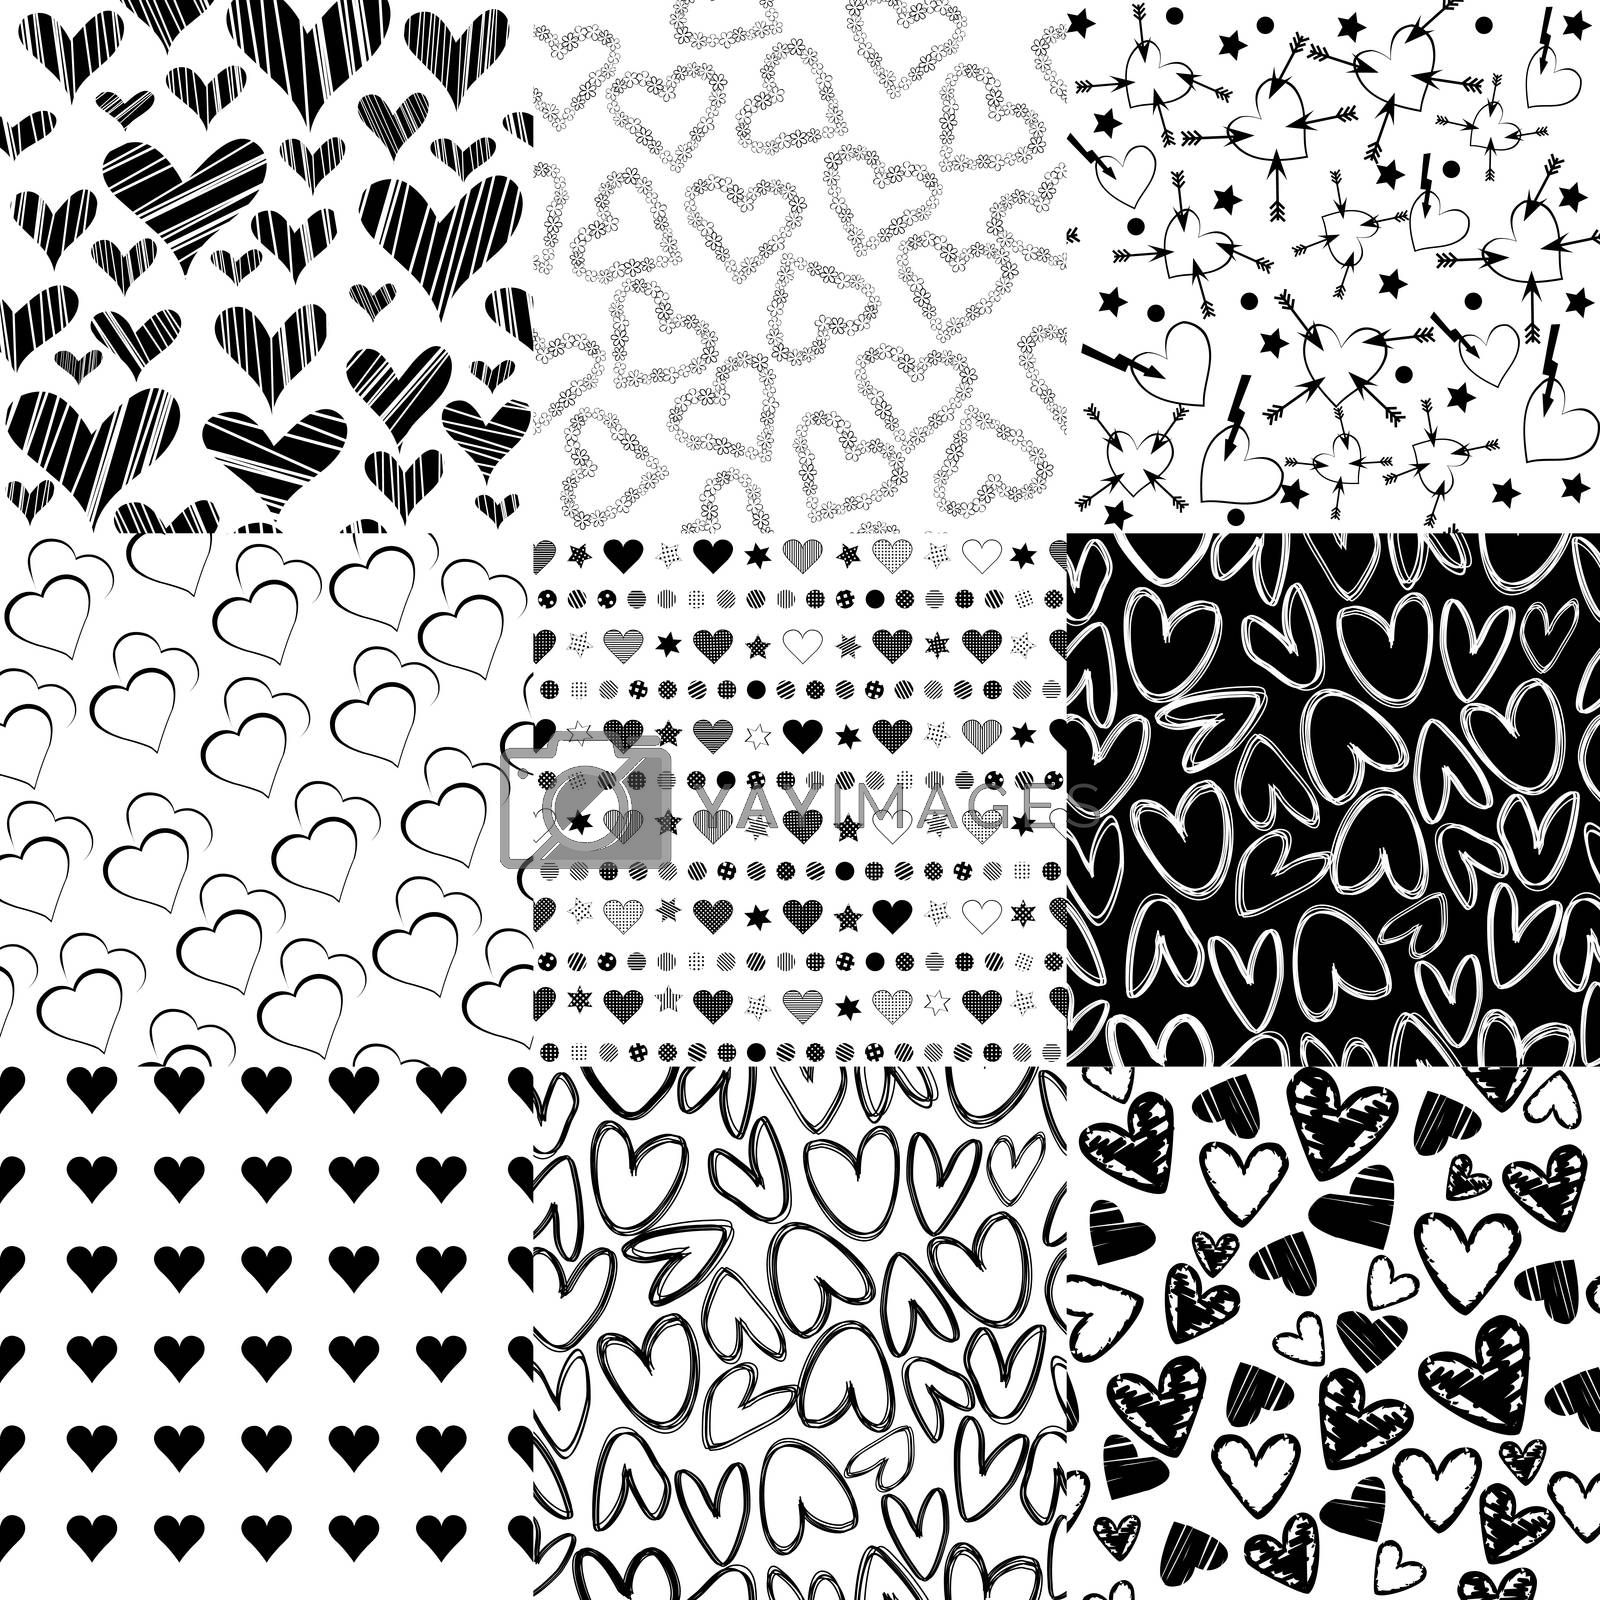 Black and white patterns with hearts for Valentines day